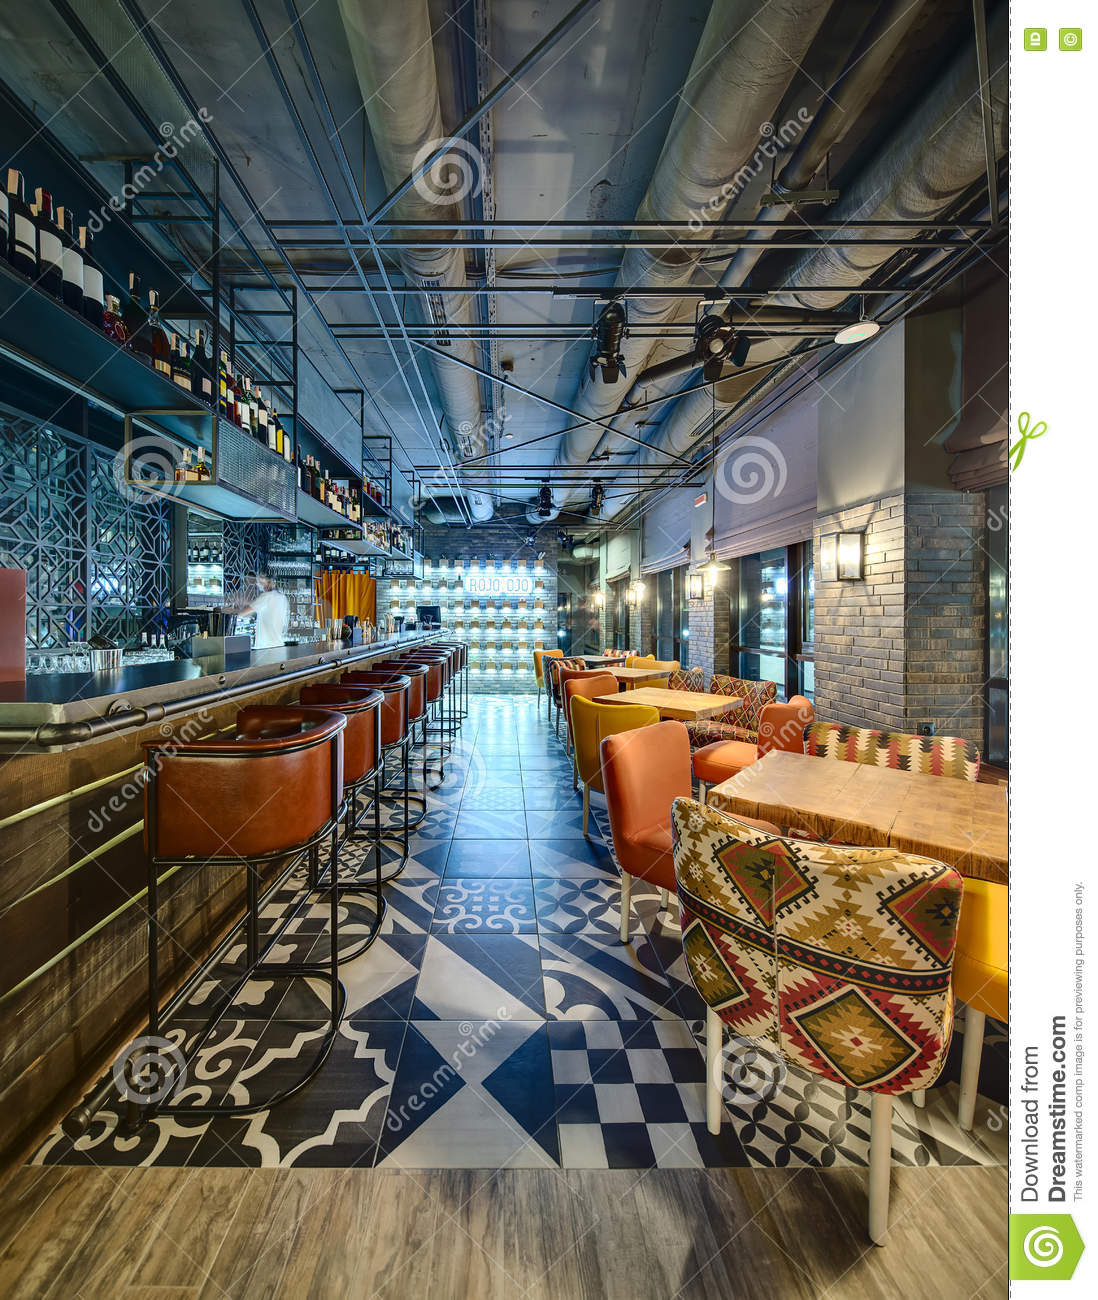 Mexican Restaurant S Bar Editorial Photo Image Of Glowing 72331911